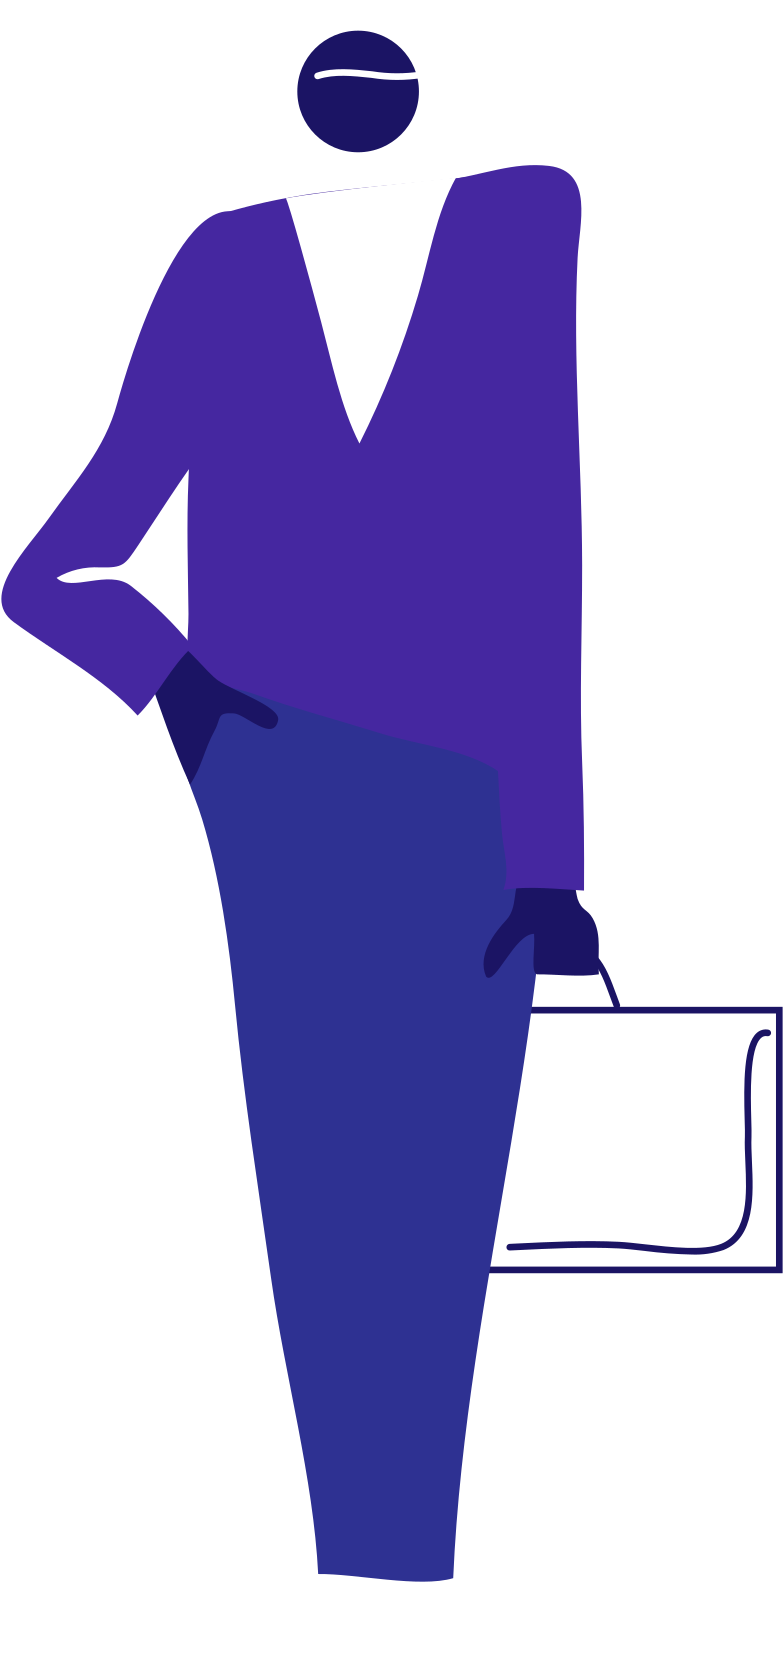 y office man with case Clipart illustration in PNG, SVG